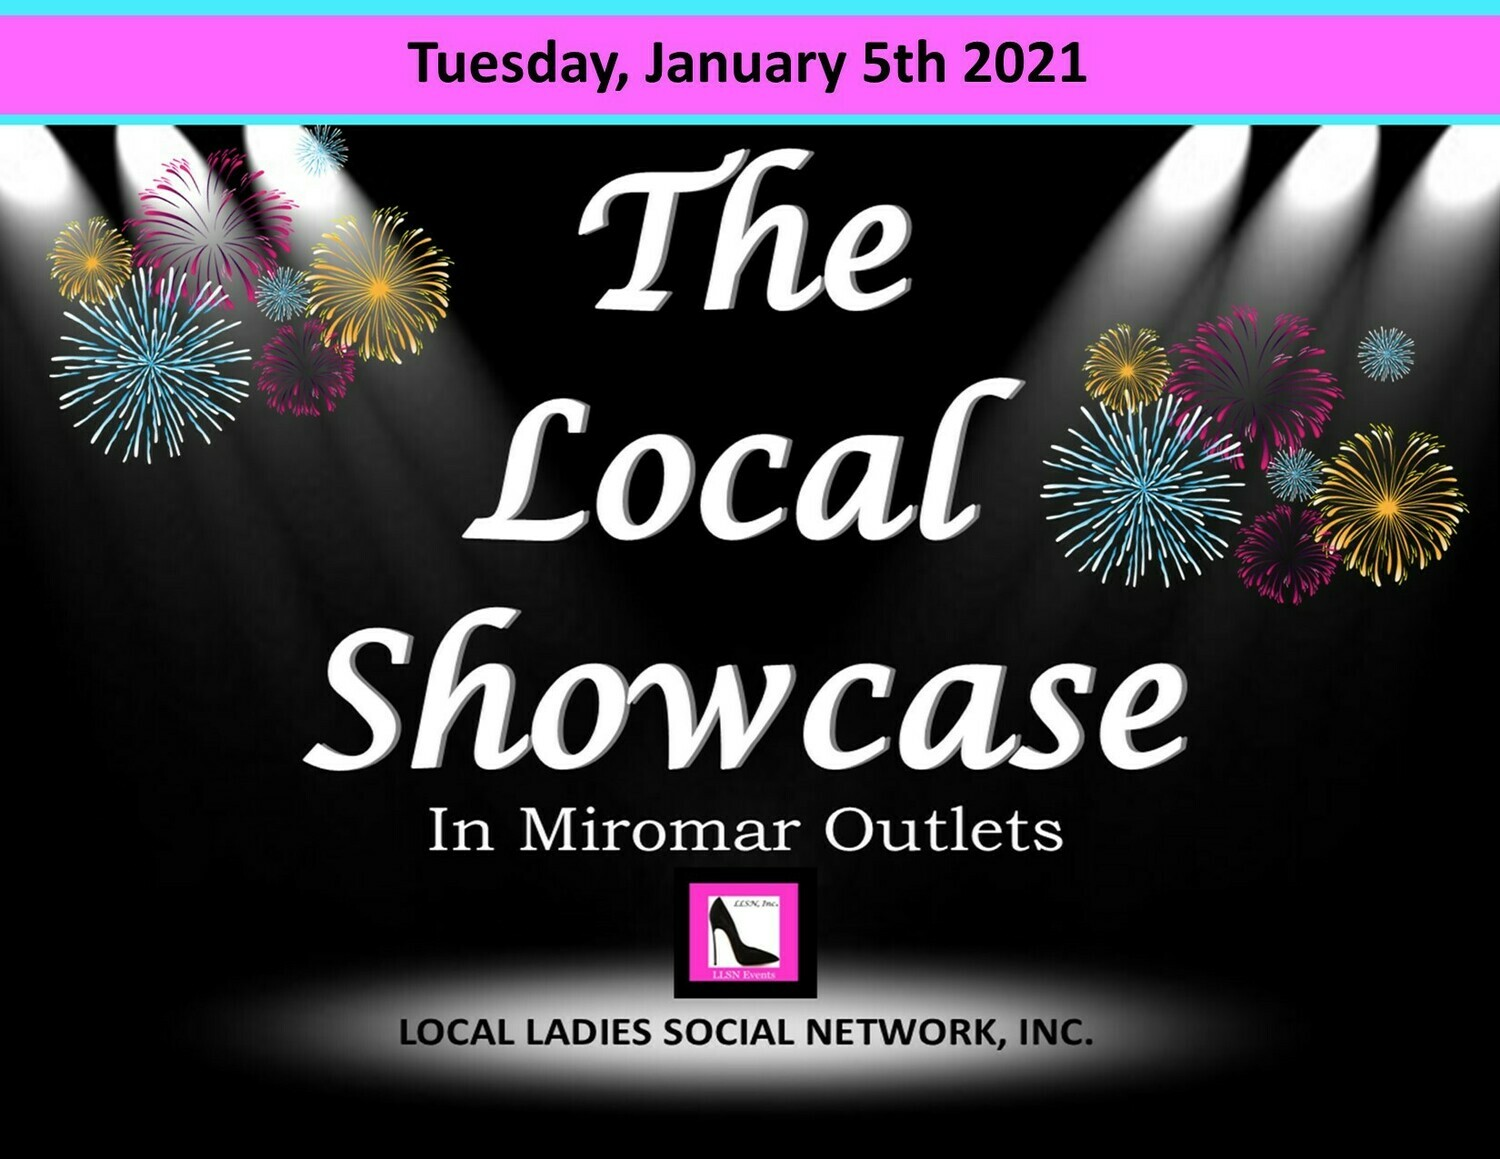 Tuesday, January 5th 11am-7pm.